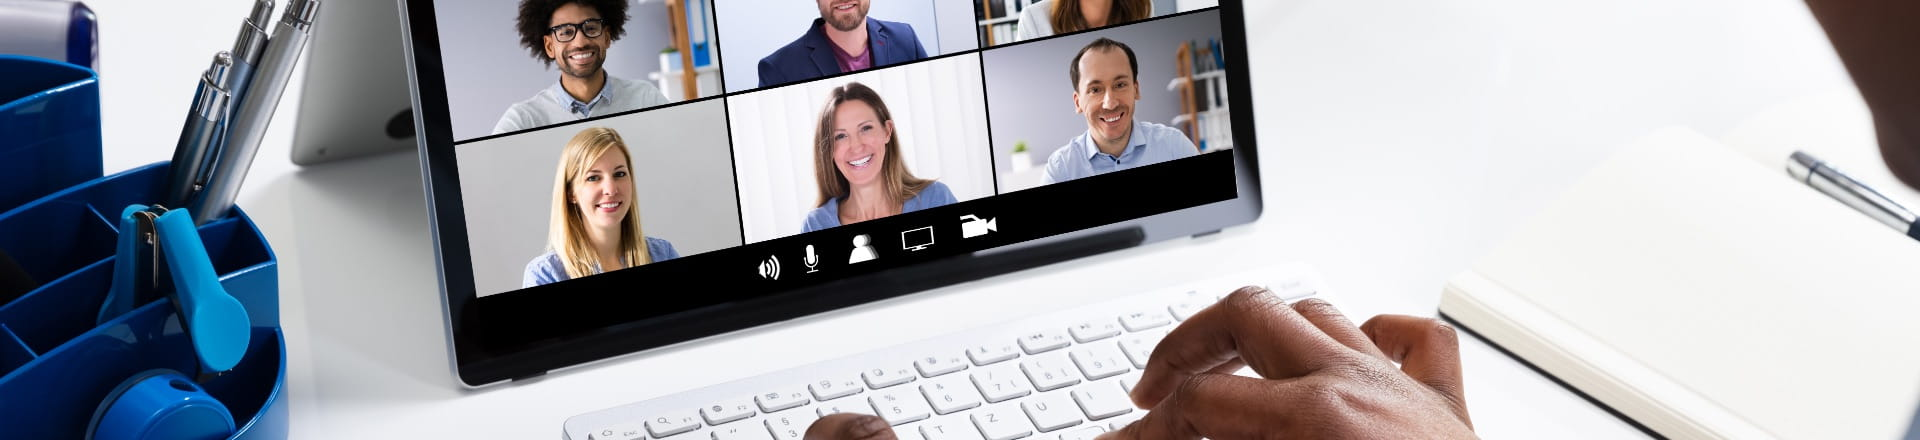 A persons laptop with a video conference happening